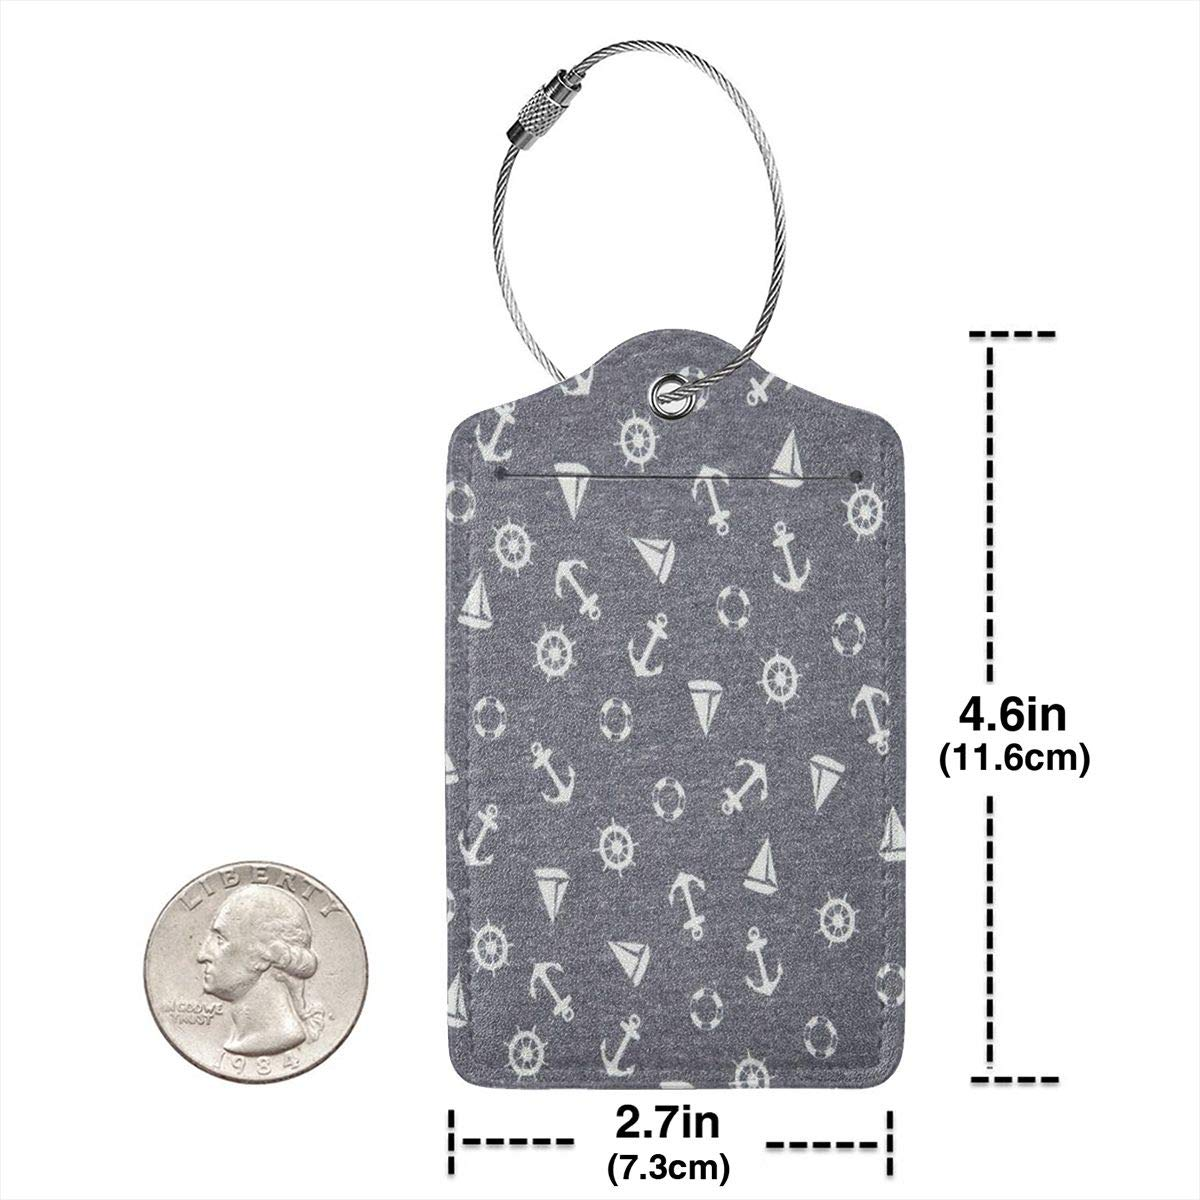 Salty Anchor Luggage Tags With Full Back Privacy Cover W//Steel Loops